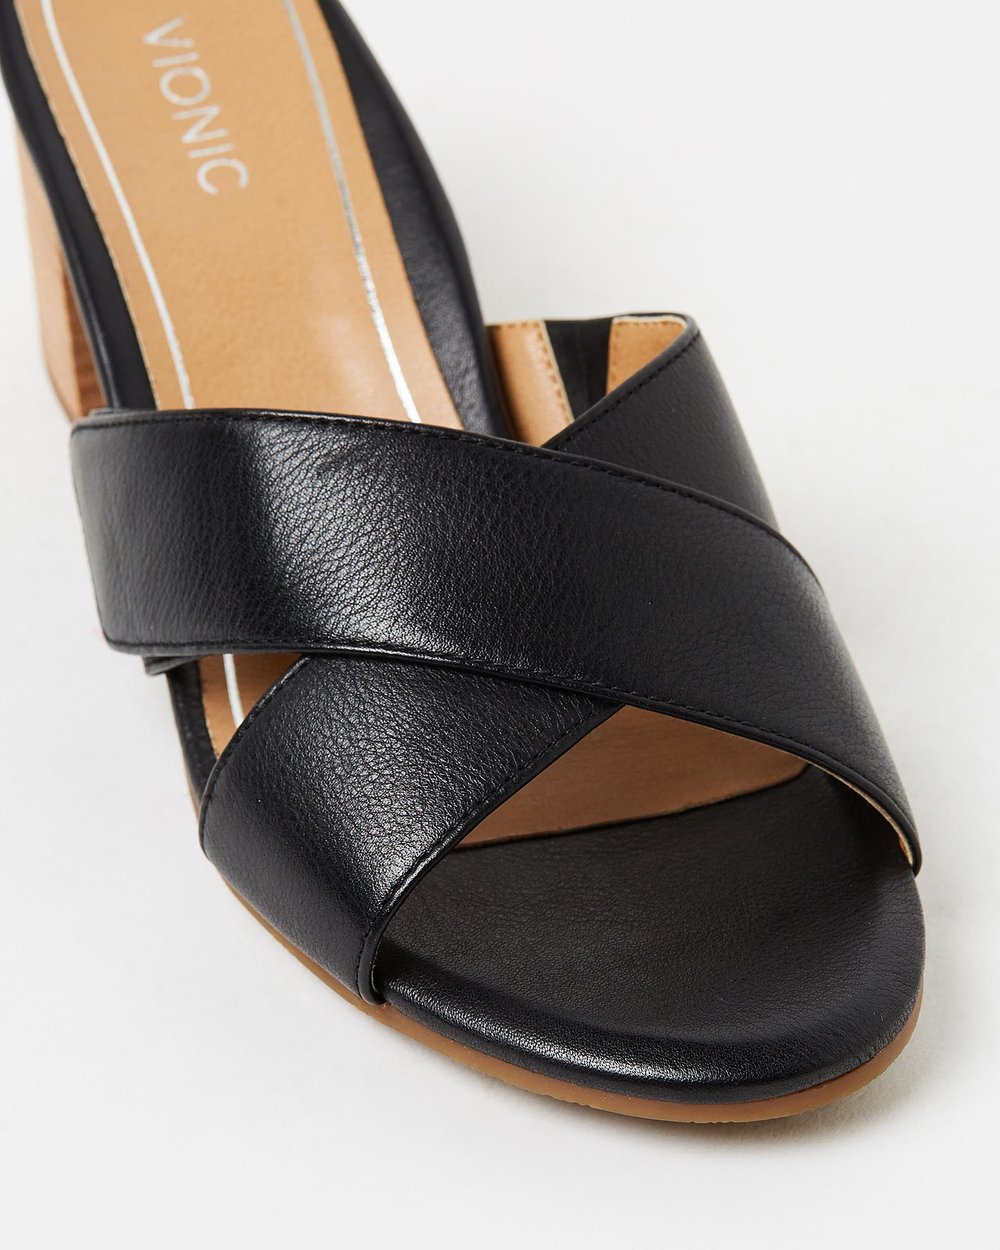 2a37eac0cd6a Lorne Slide Sandals by Vionic Online